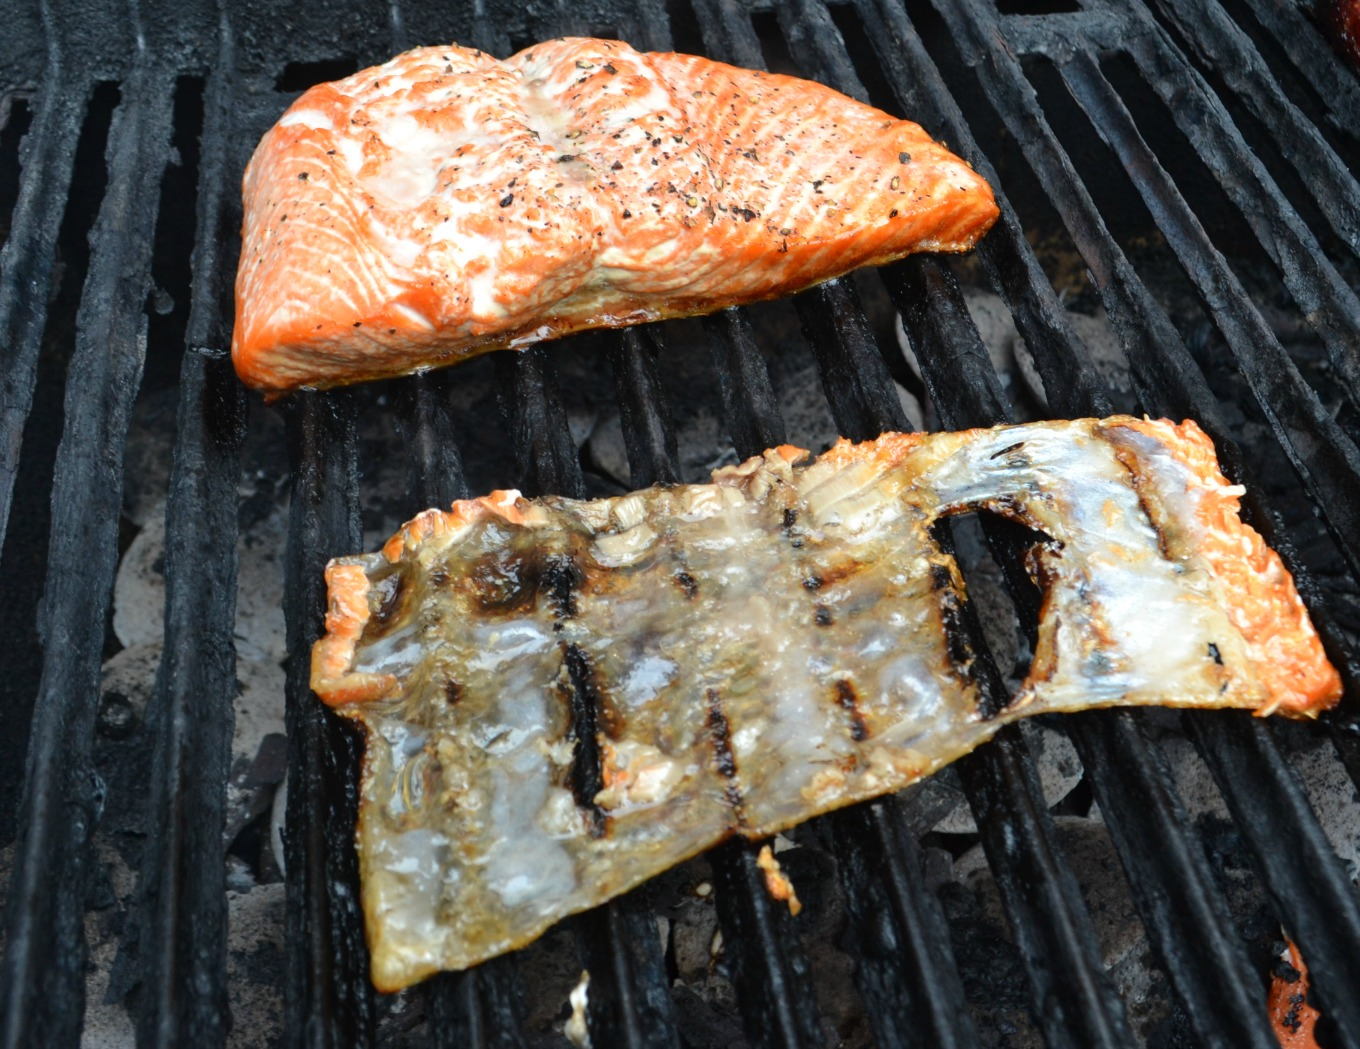 Leave the skin on the grill or remove it to clean up easy recipes for the grill - thediybungalow.com